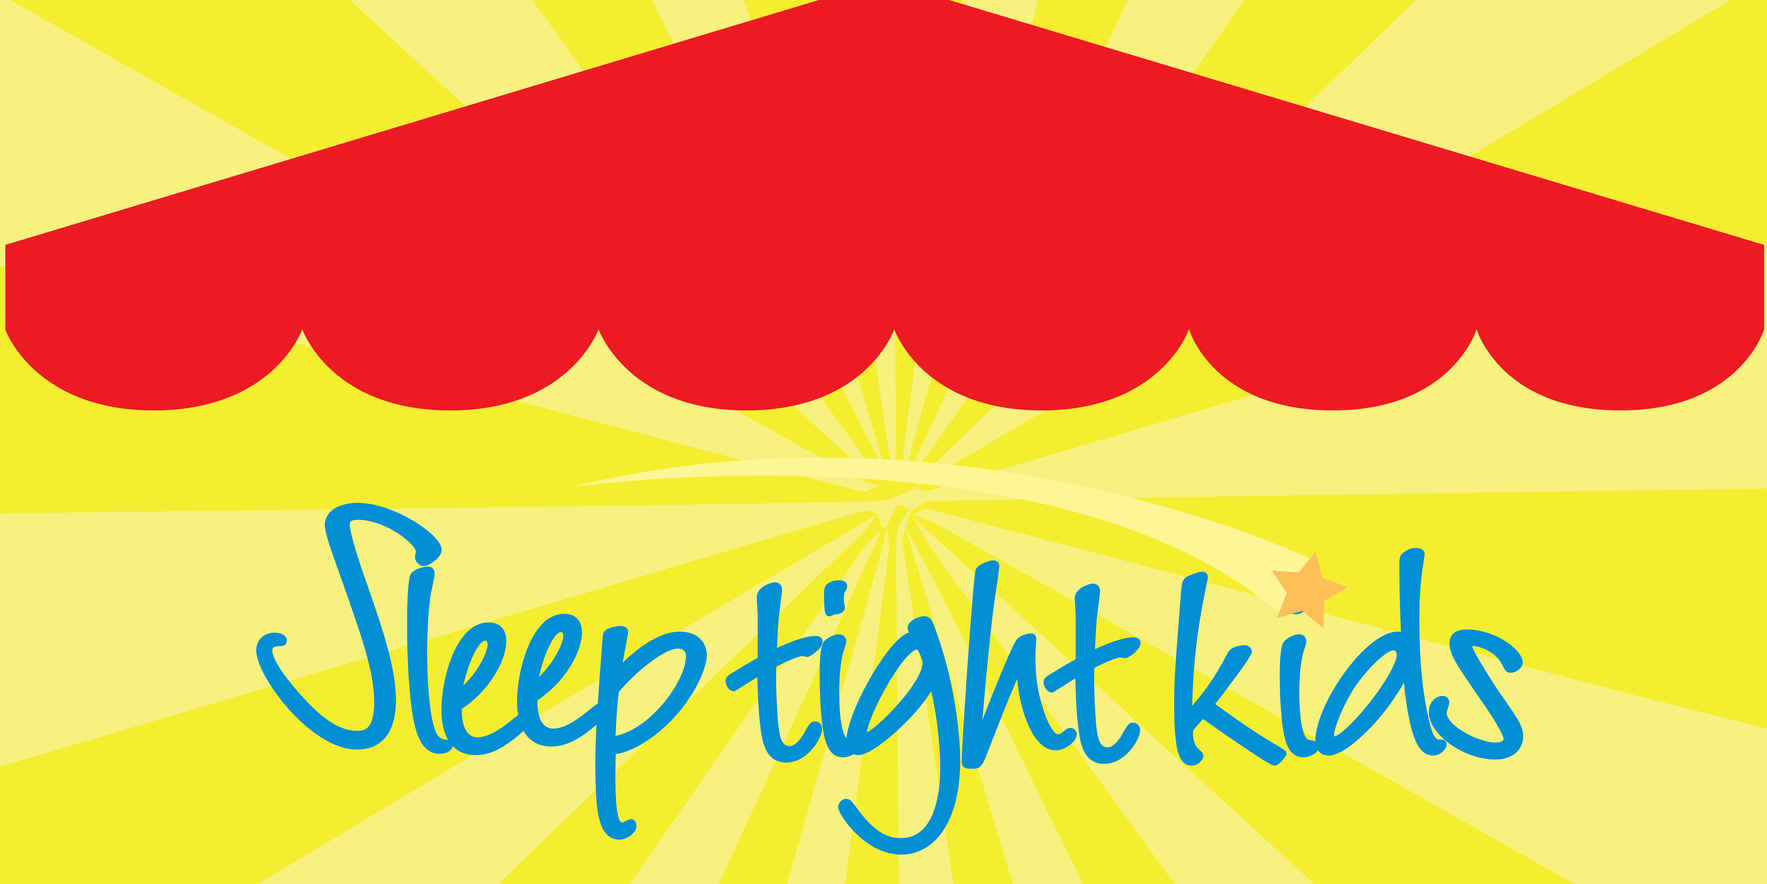 Sleep Tight Kids Carnival Day! image